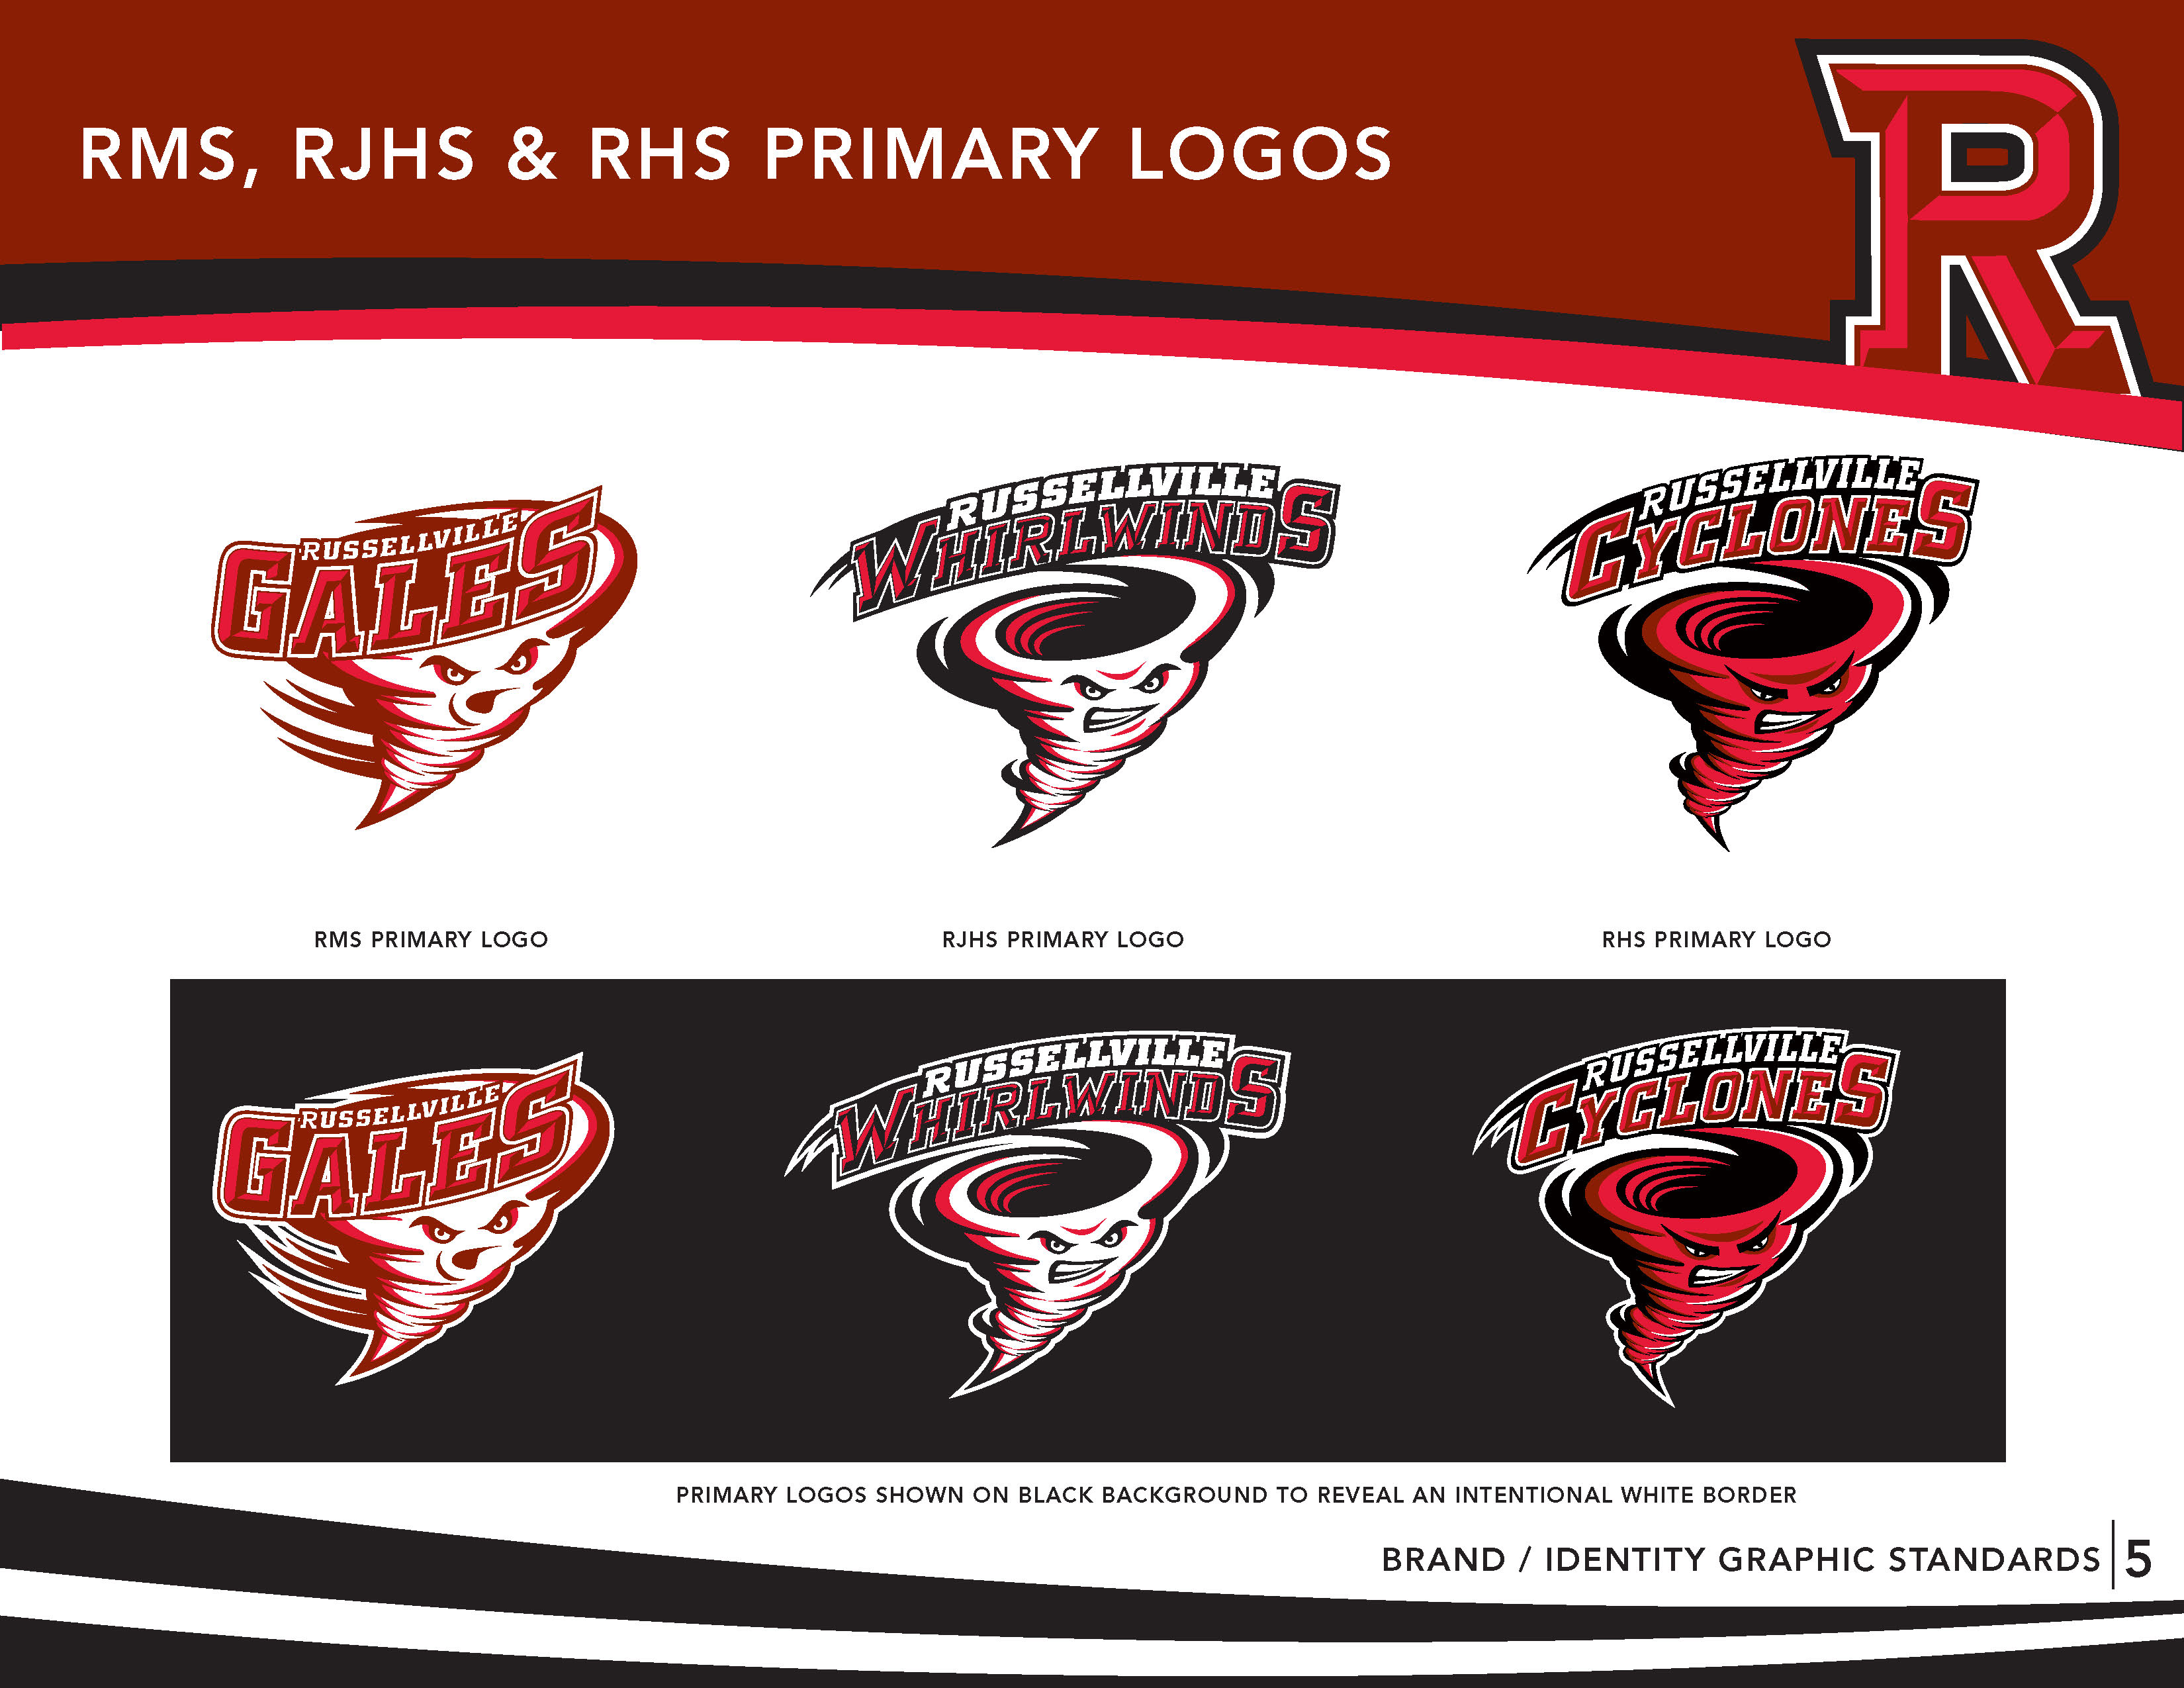 1488403600-brand_identity_graphic_standards_rhs_rjhs_rms__1-15__5